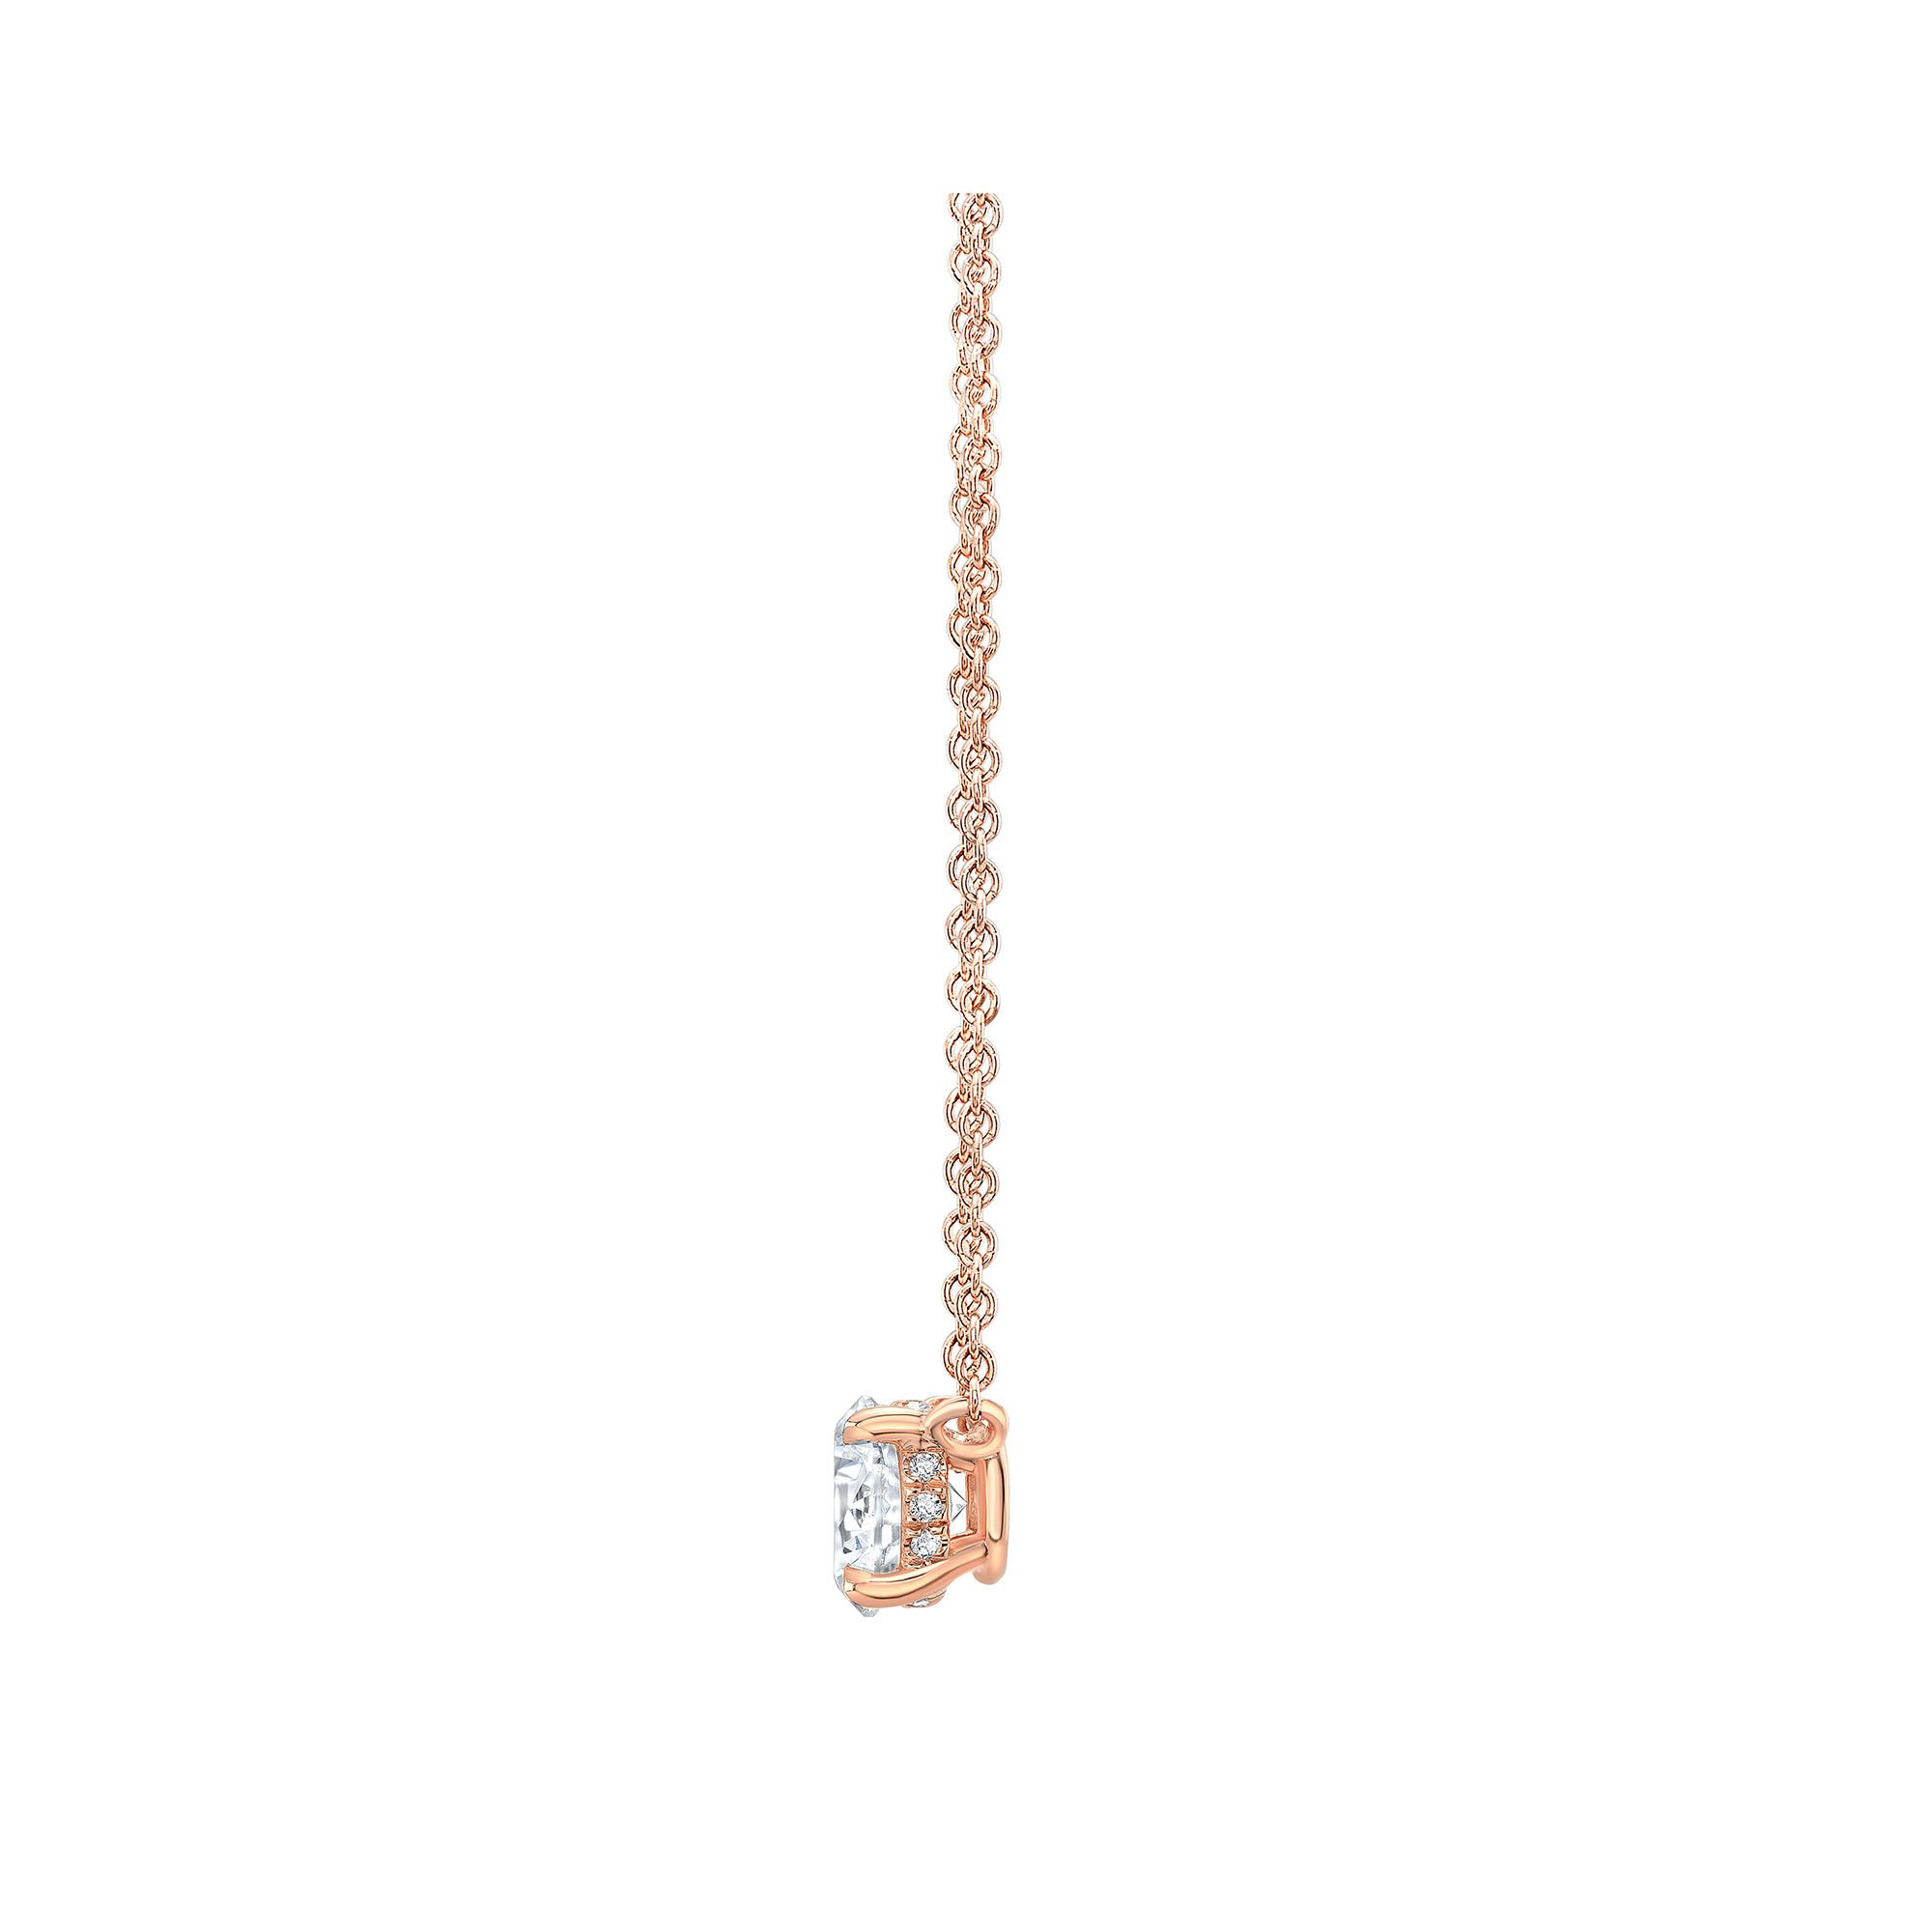 Marie Round Brilliant 2 Carat Lab Grown Diamond Necklace Side View in Rose Gold